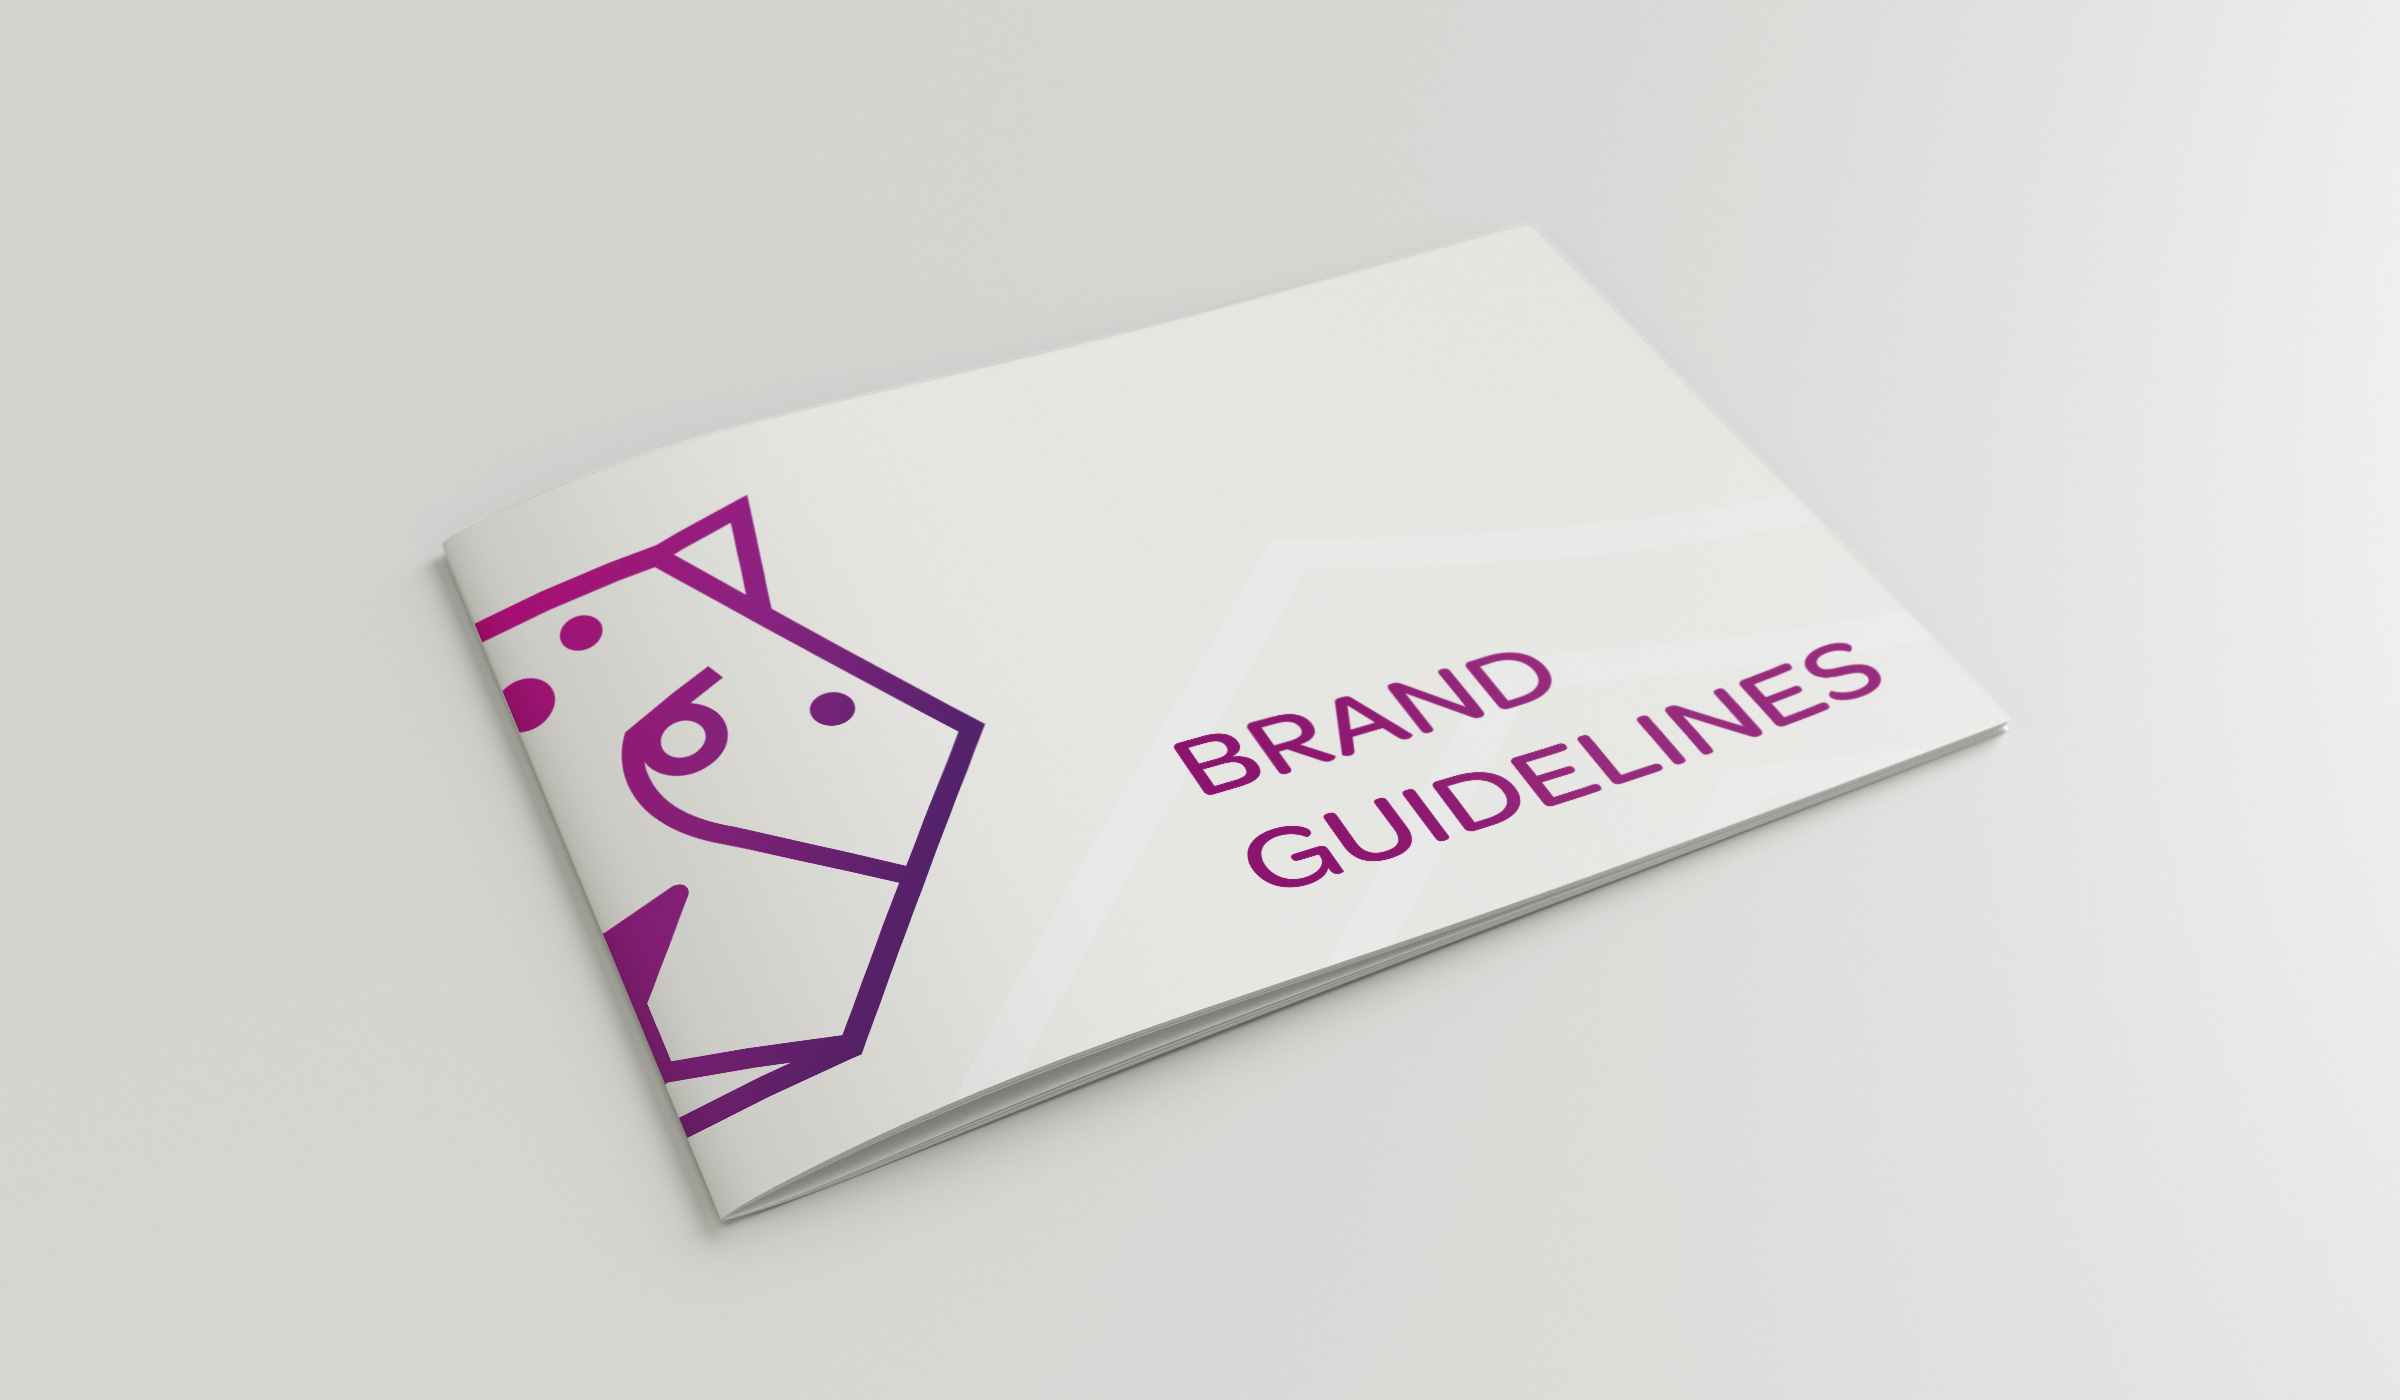 Propel-it Brand Guidelines Front Cover